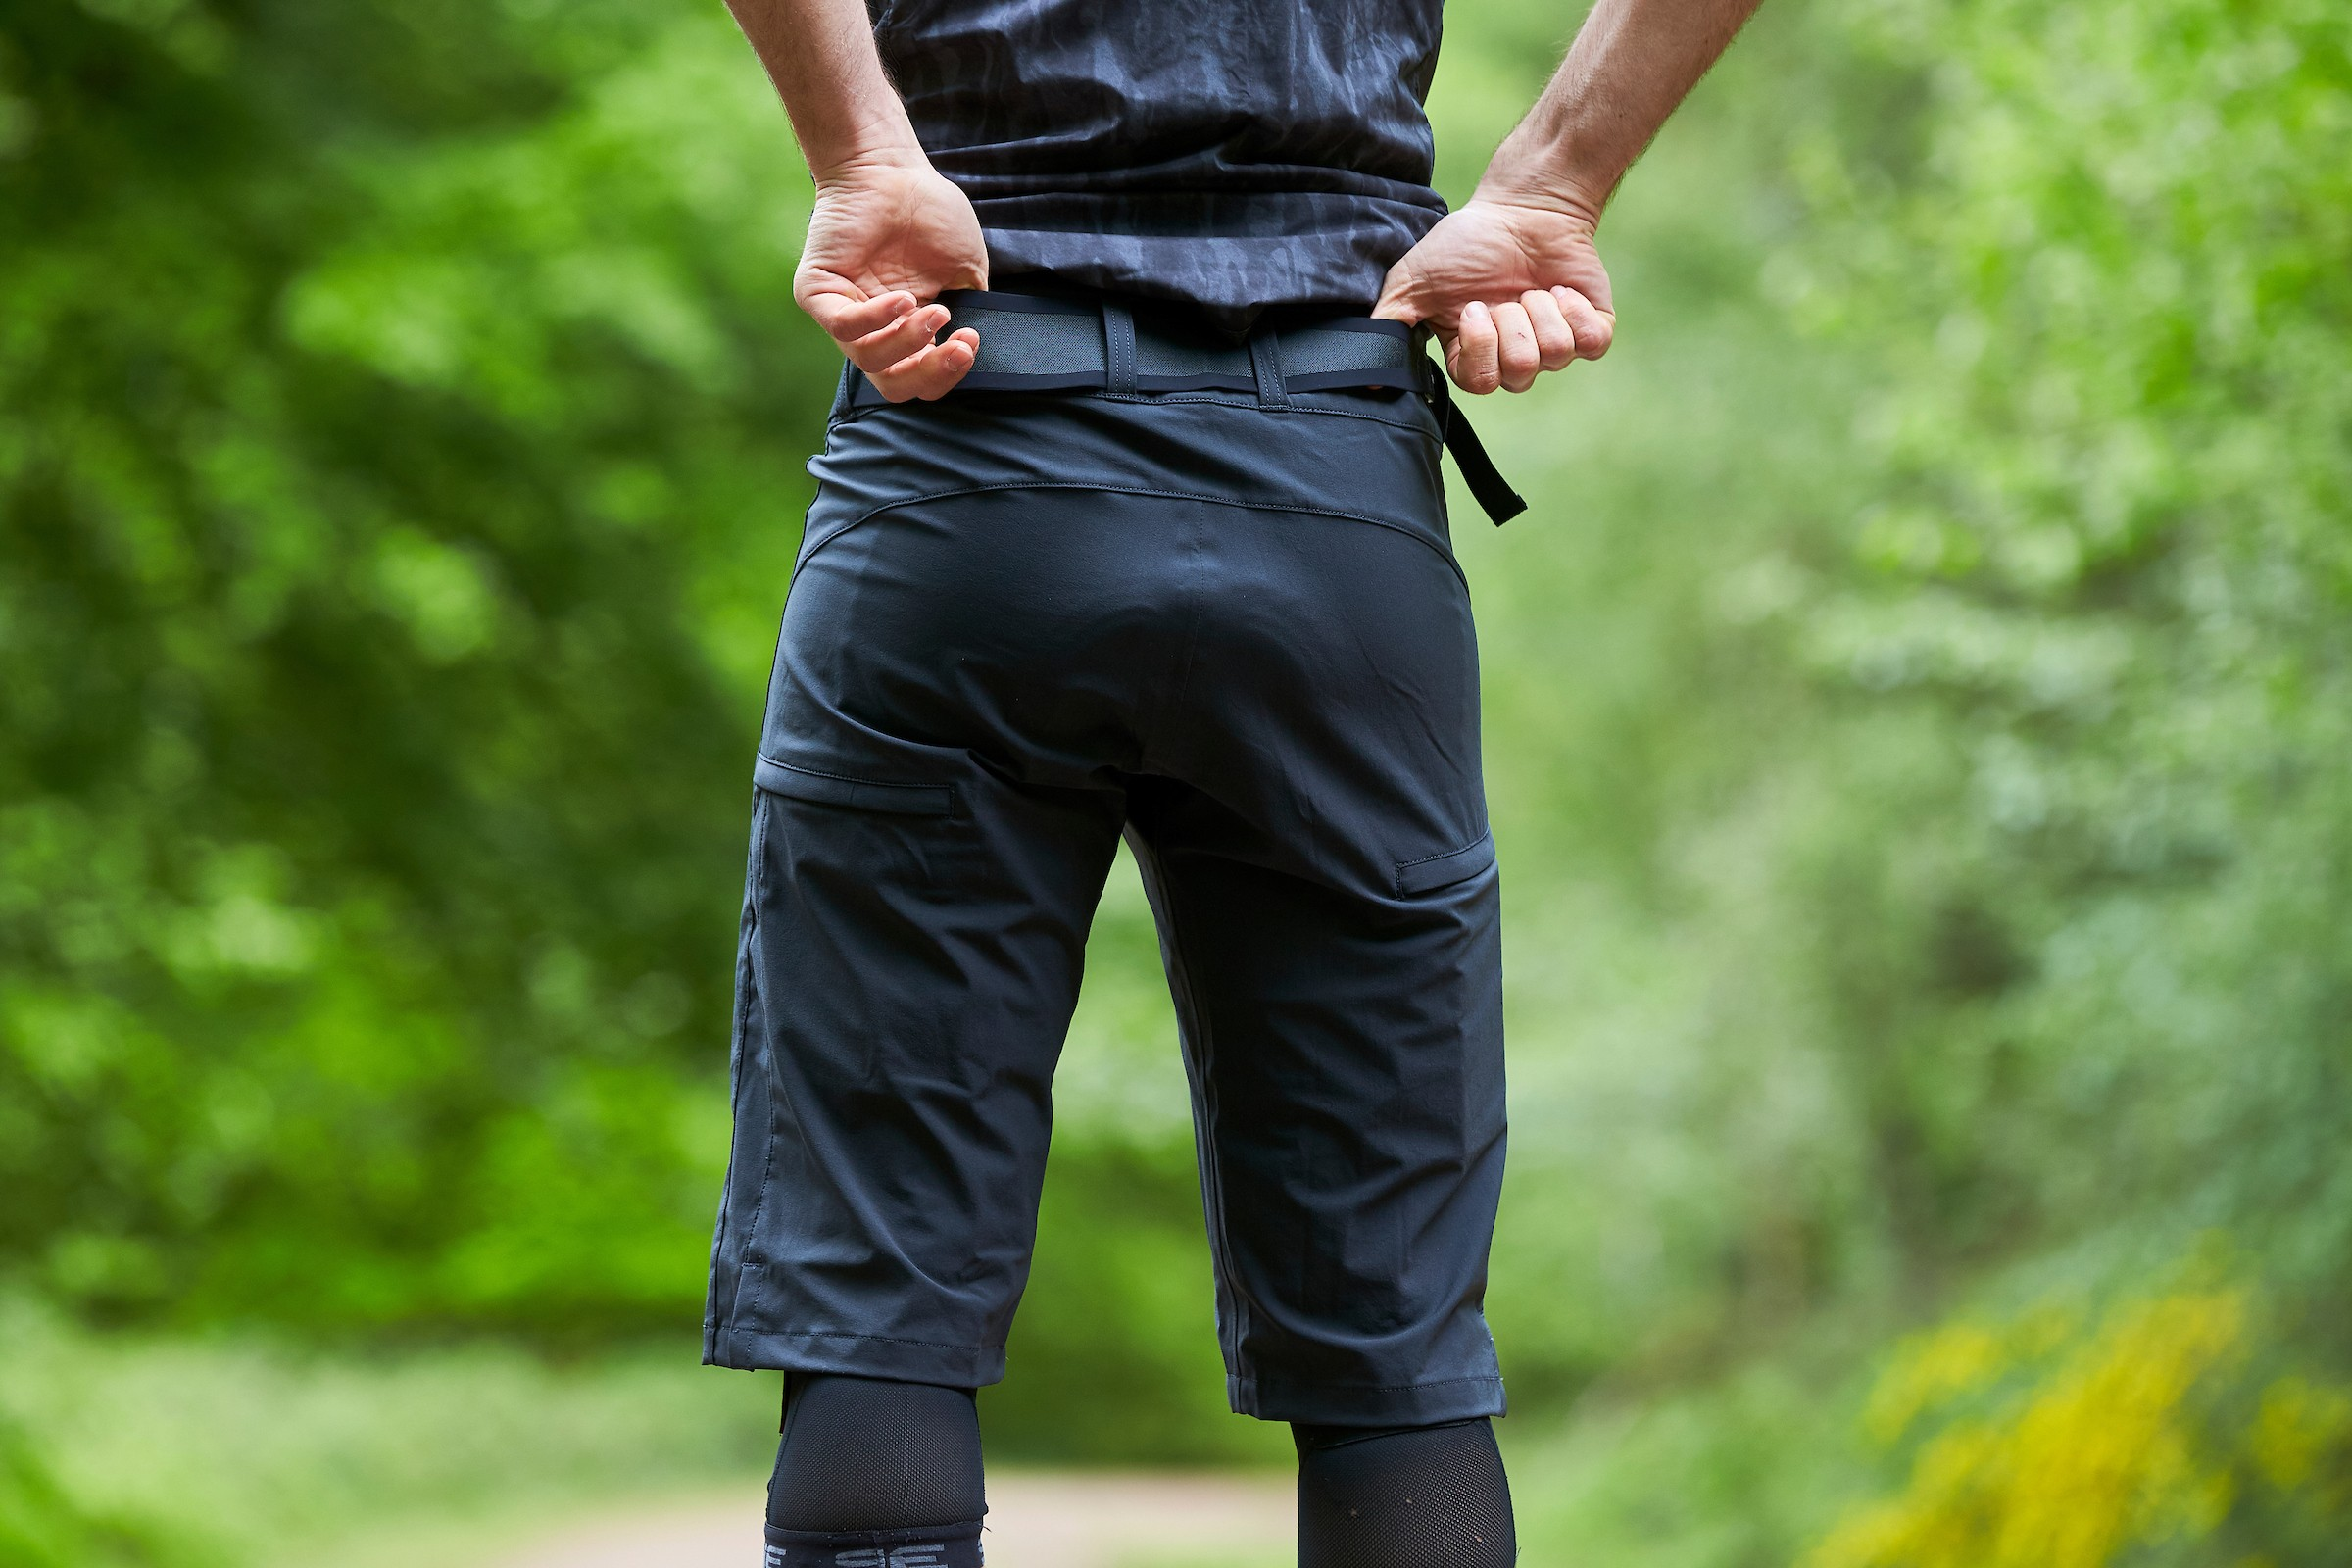 Man adjusted waistband on Mission Workshop The Traverse shorts with his hands